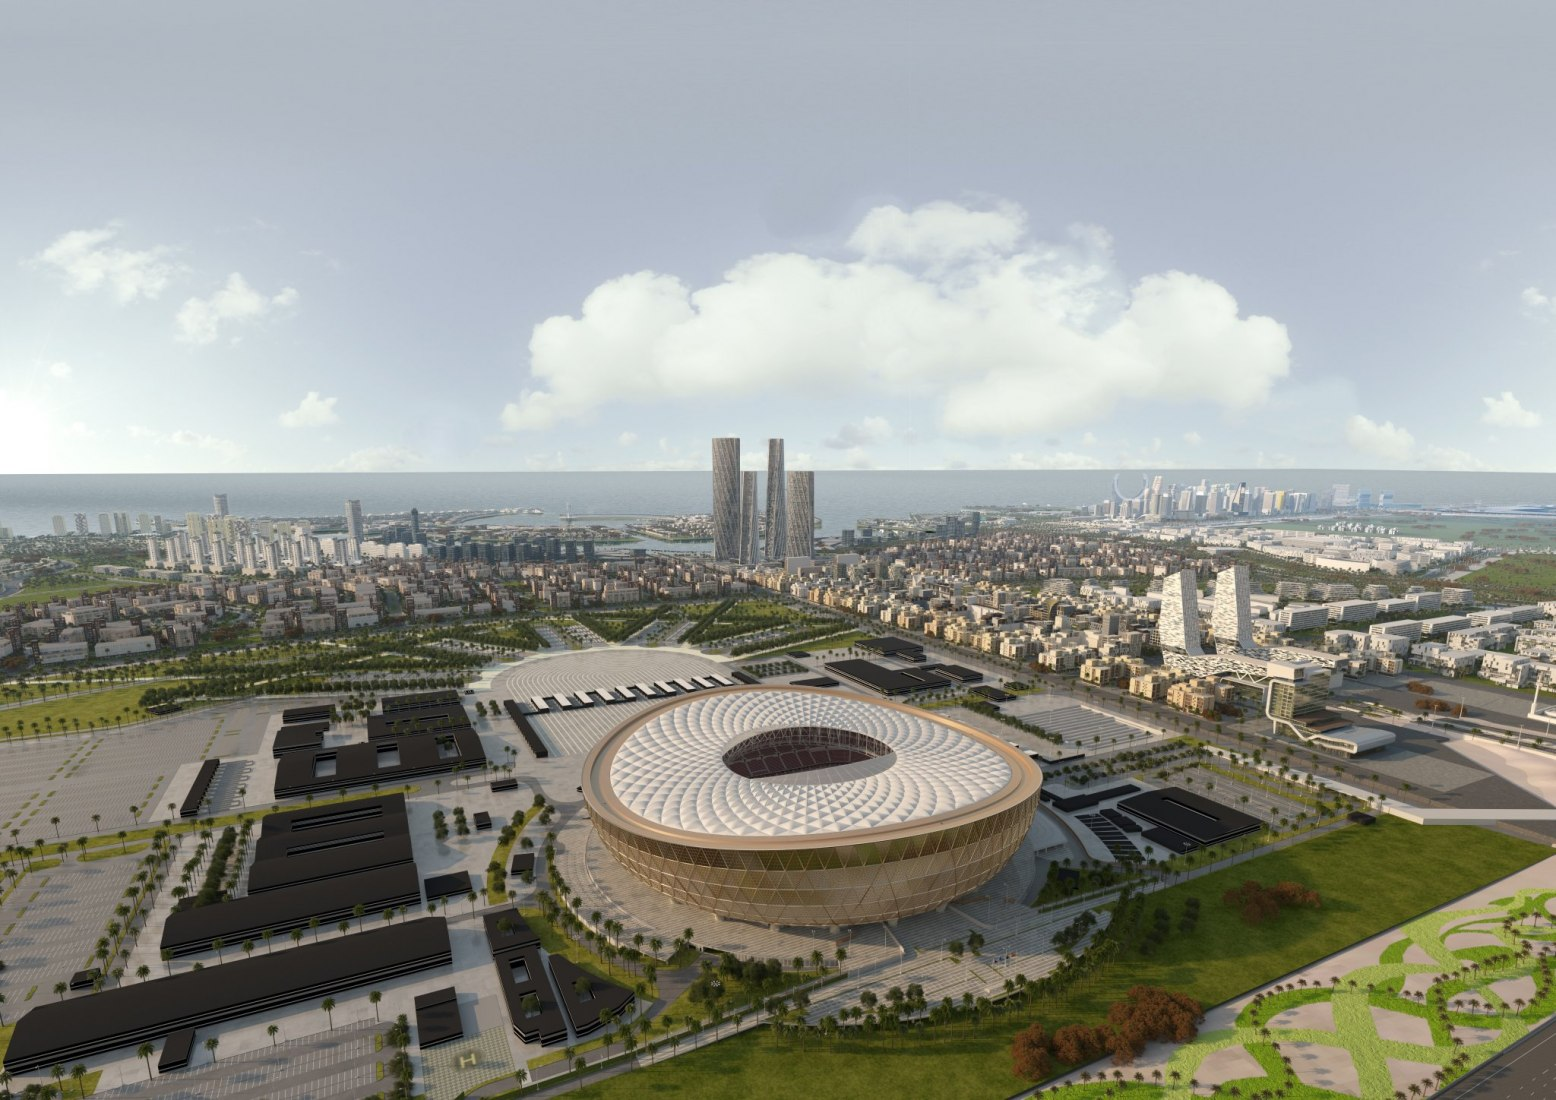 Lusail FIFA World Cup Stadium by Norman Foster. Image courtesy of Supreme Committee for Delivery & Legacy.